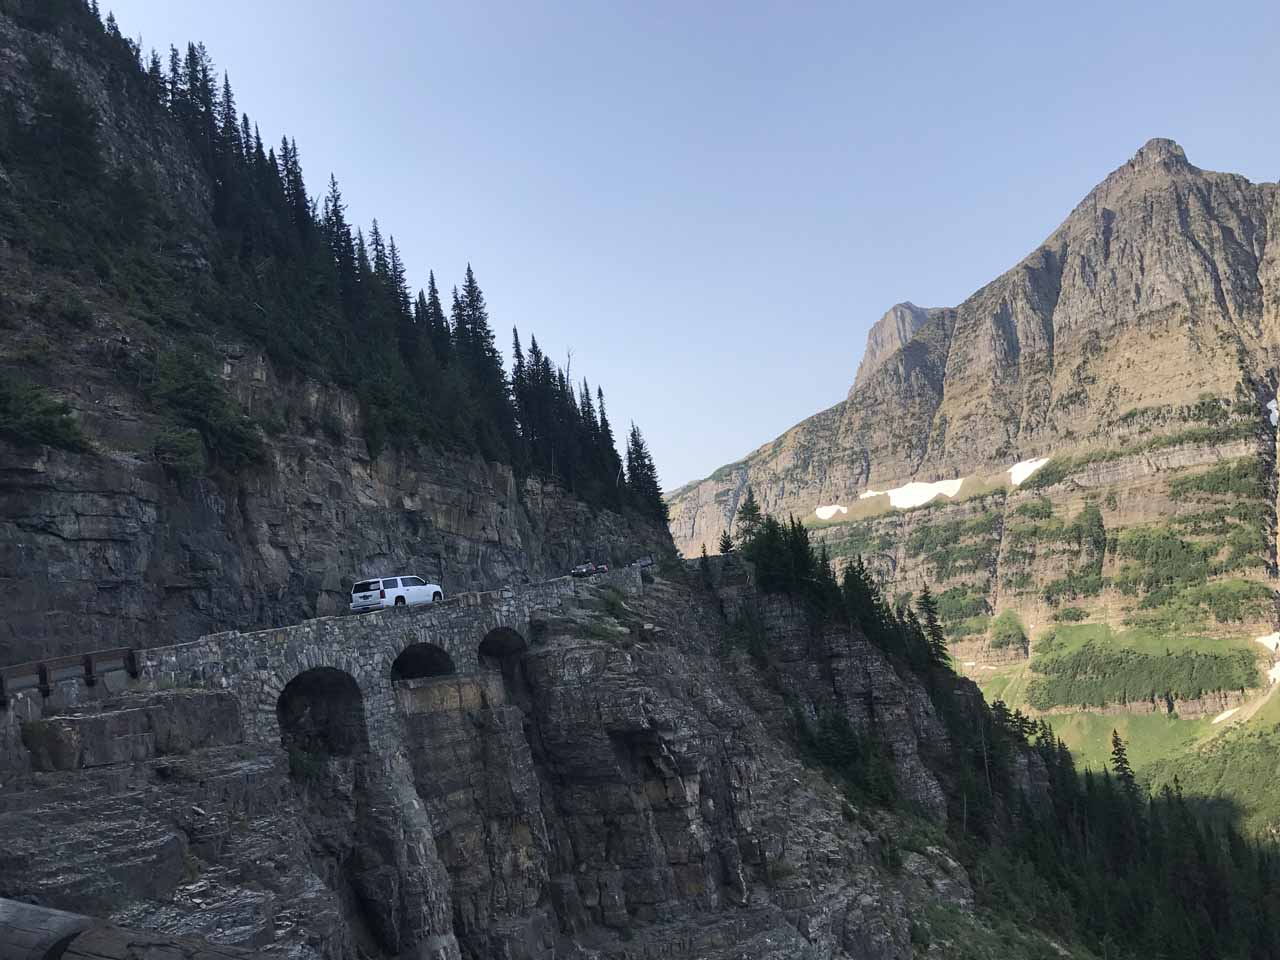 There was no pullout to get a good look at the Triple Arches so Julie managed to take this shot while I was driving east towards Logan Pass in the morning